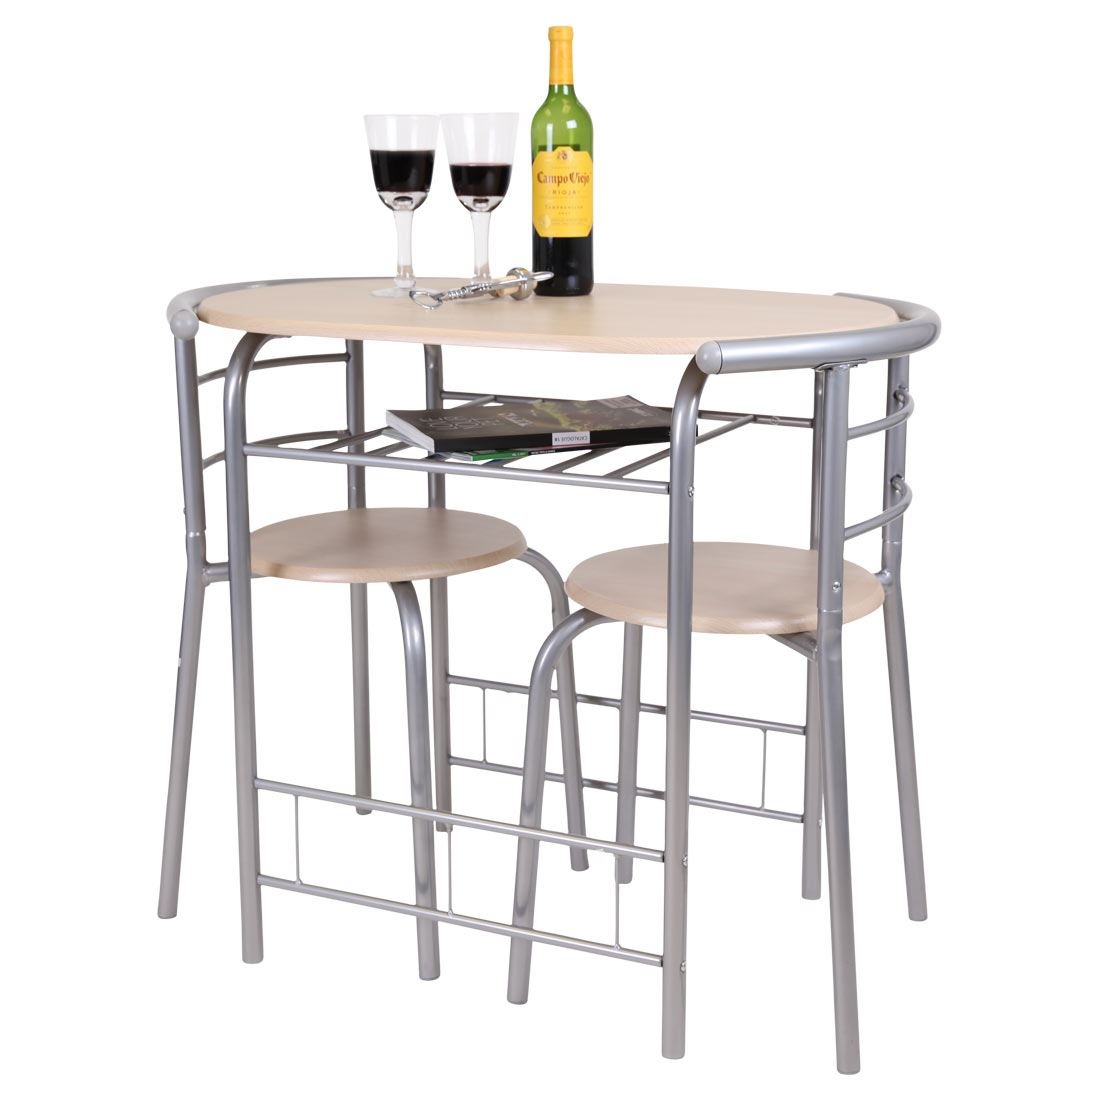 2 chair bistro set gym exercise system chicago 3 piece dining table and breakfast